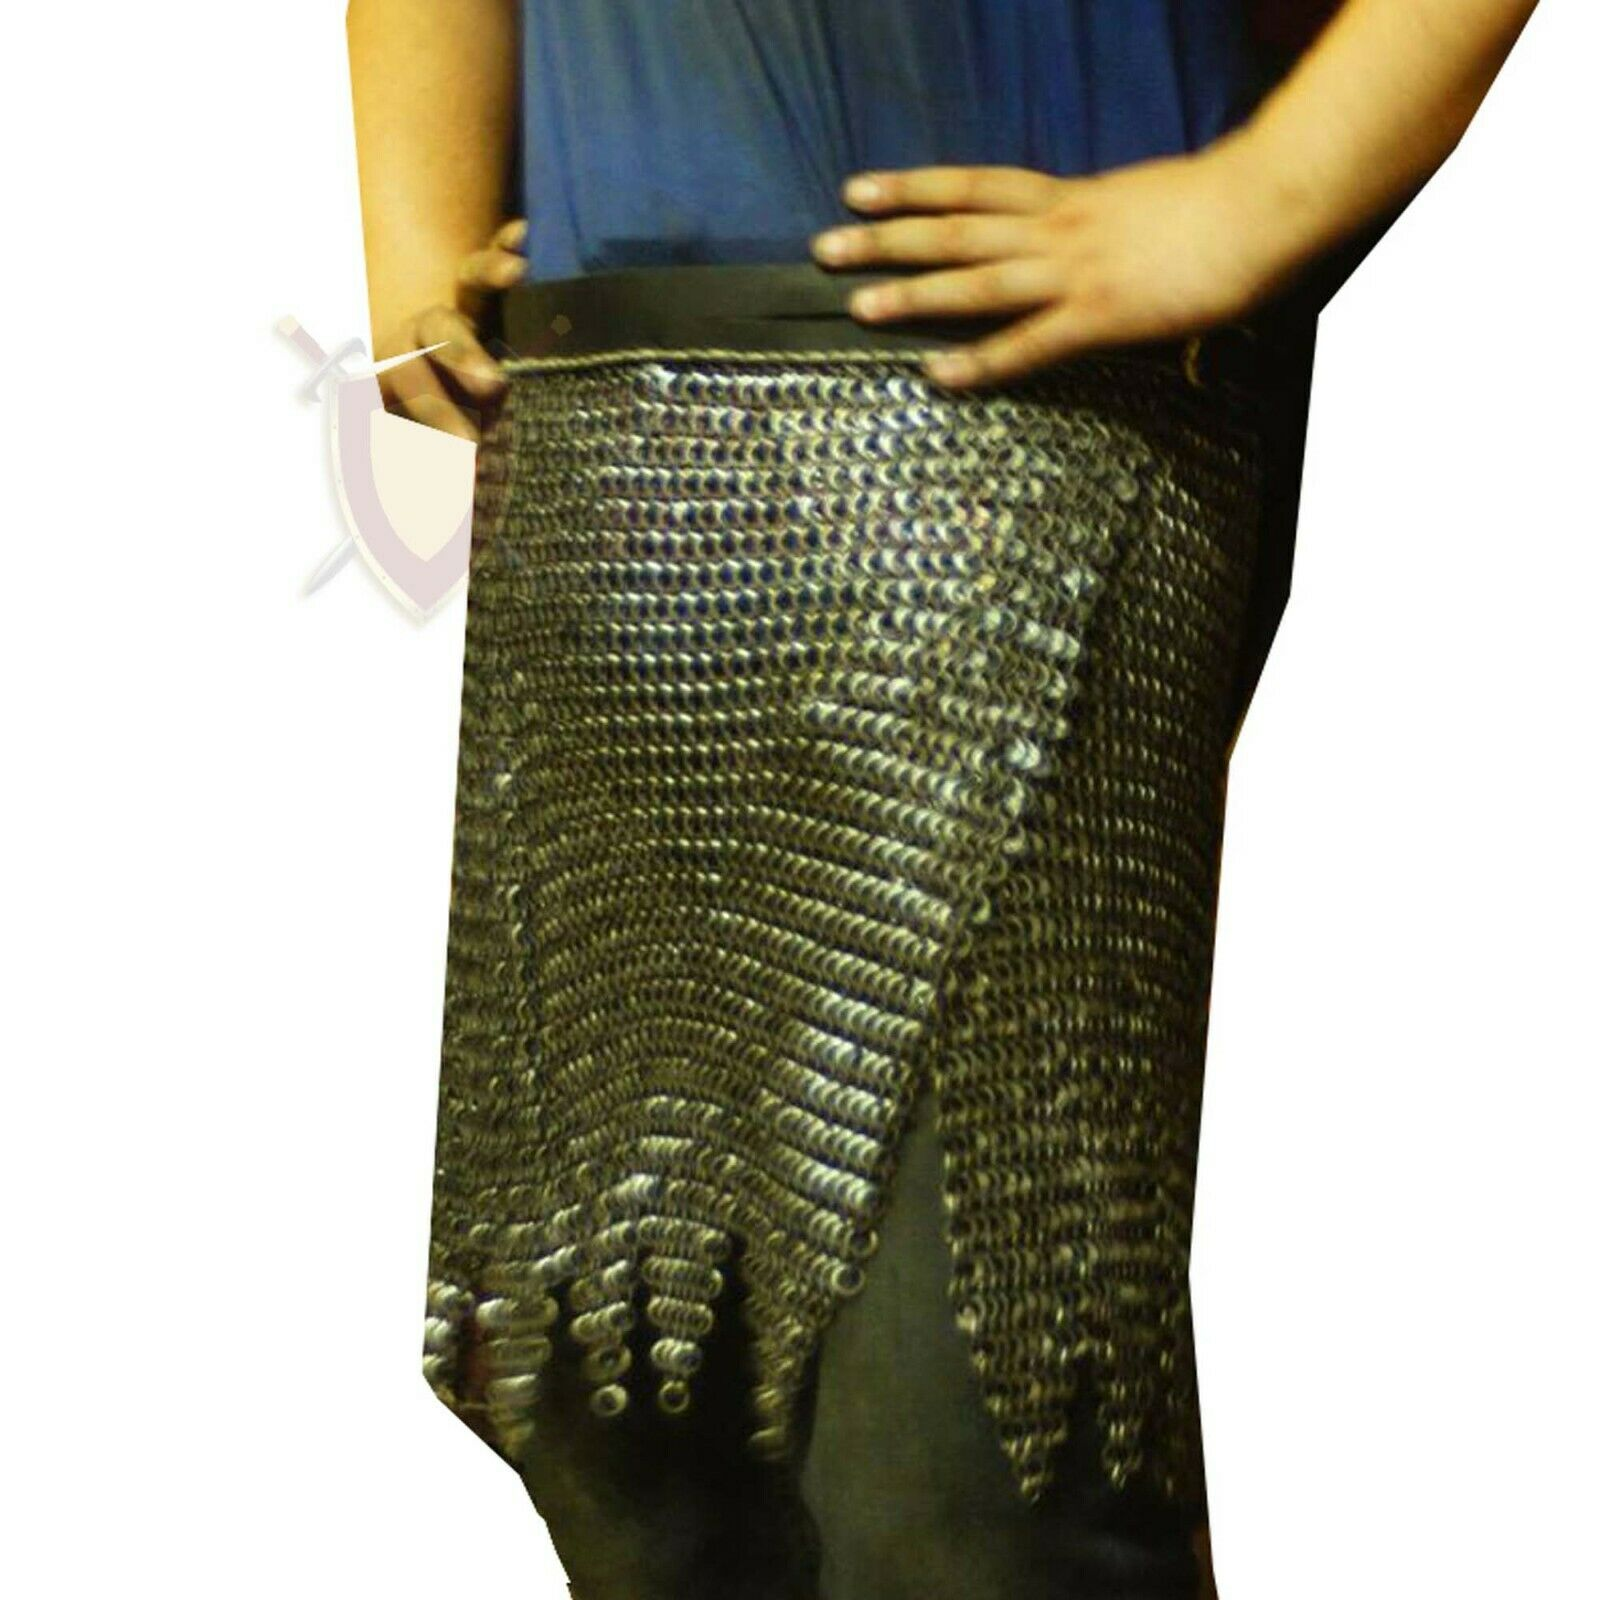 THE MEDIEVALS Chain Mail Zig-Zag SKIRT 09 MM ID MS Flat Riveted Armor SCA LARP